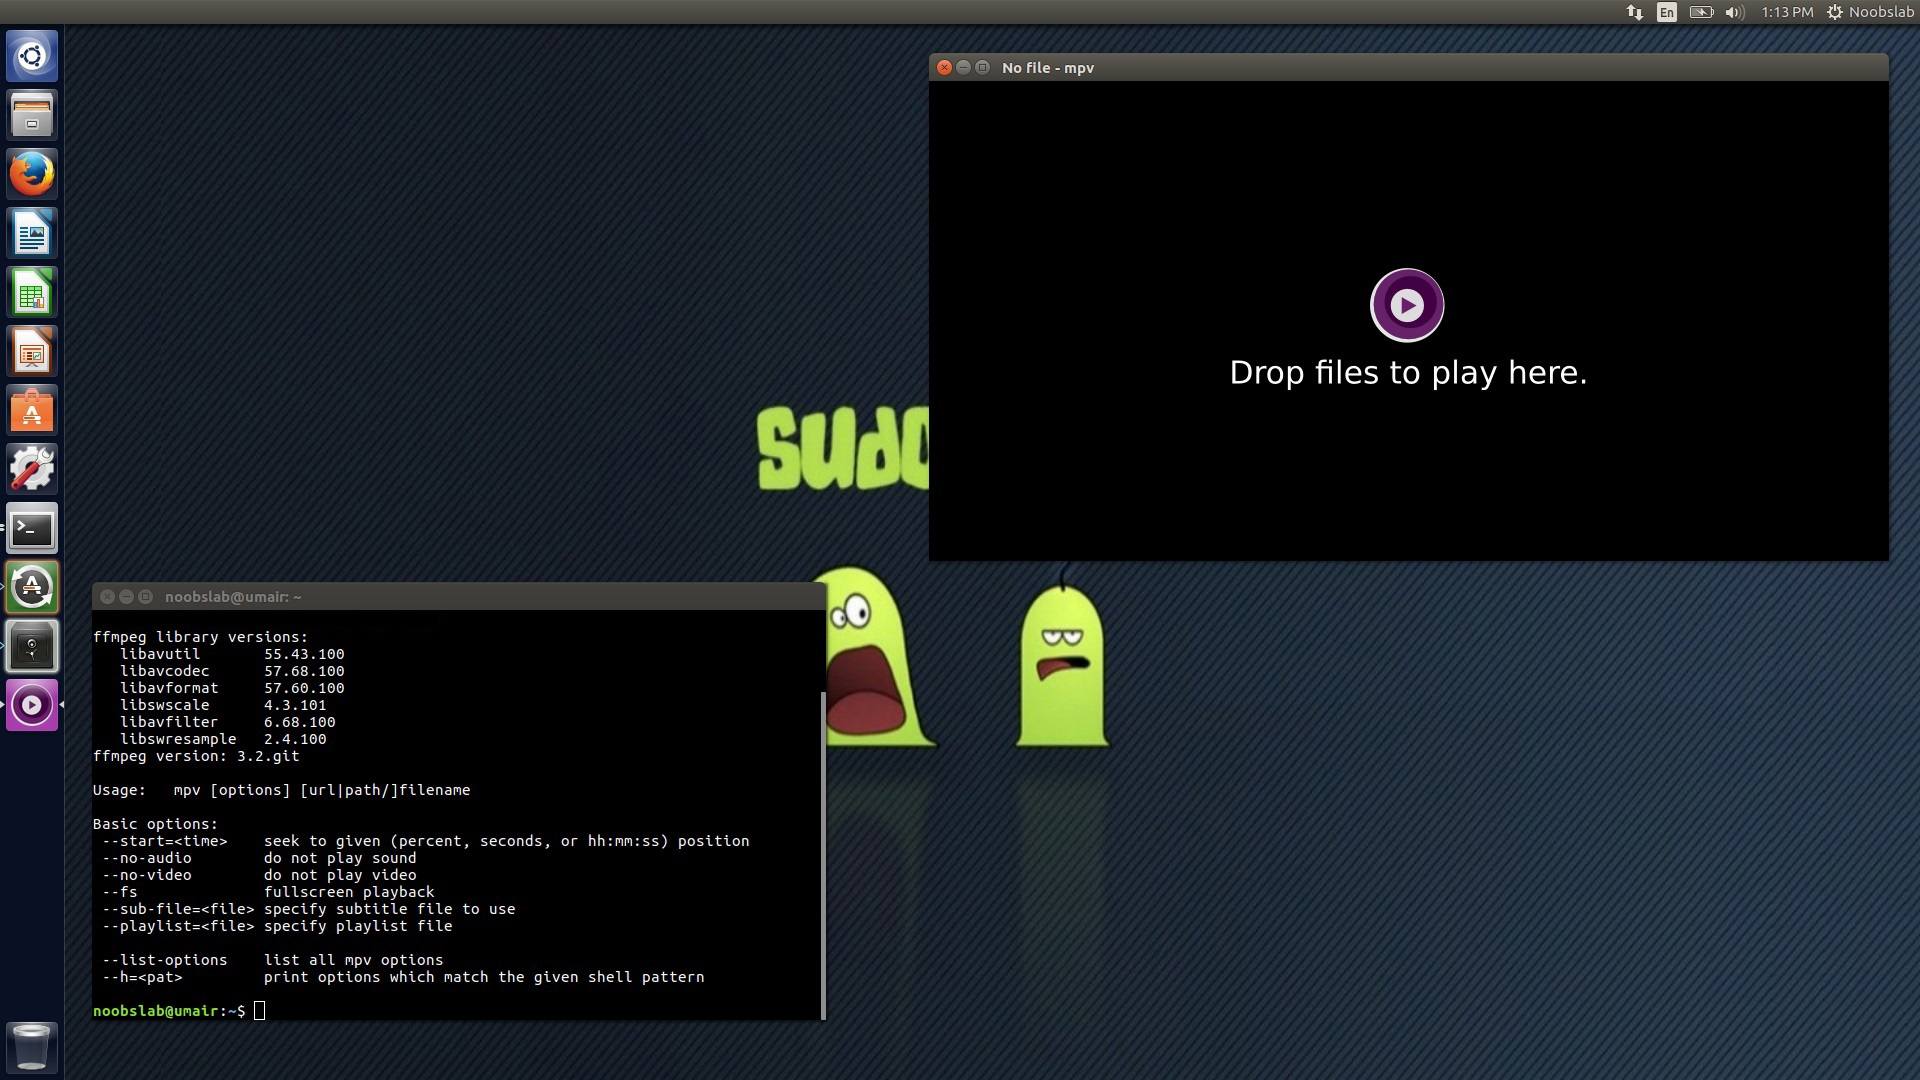 MPV: An Open-Source Mplayer Based Video Player for Ubuntu